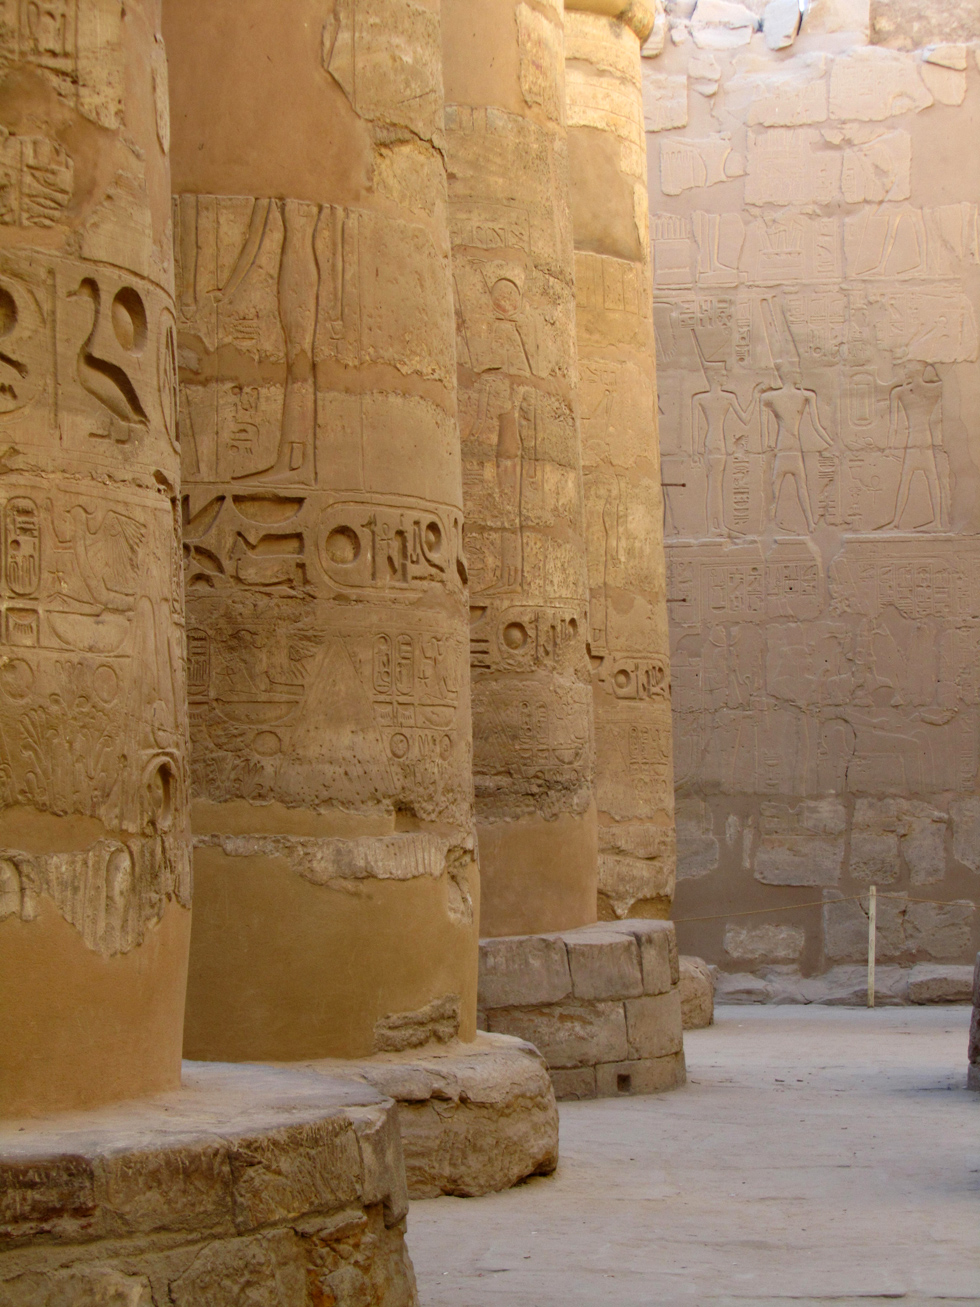 6985369946 2c69c306de o Photo: Ancient Hypostyle Hall at the Temple of Karnak